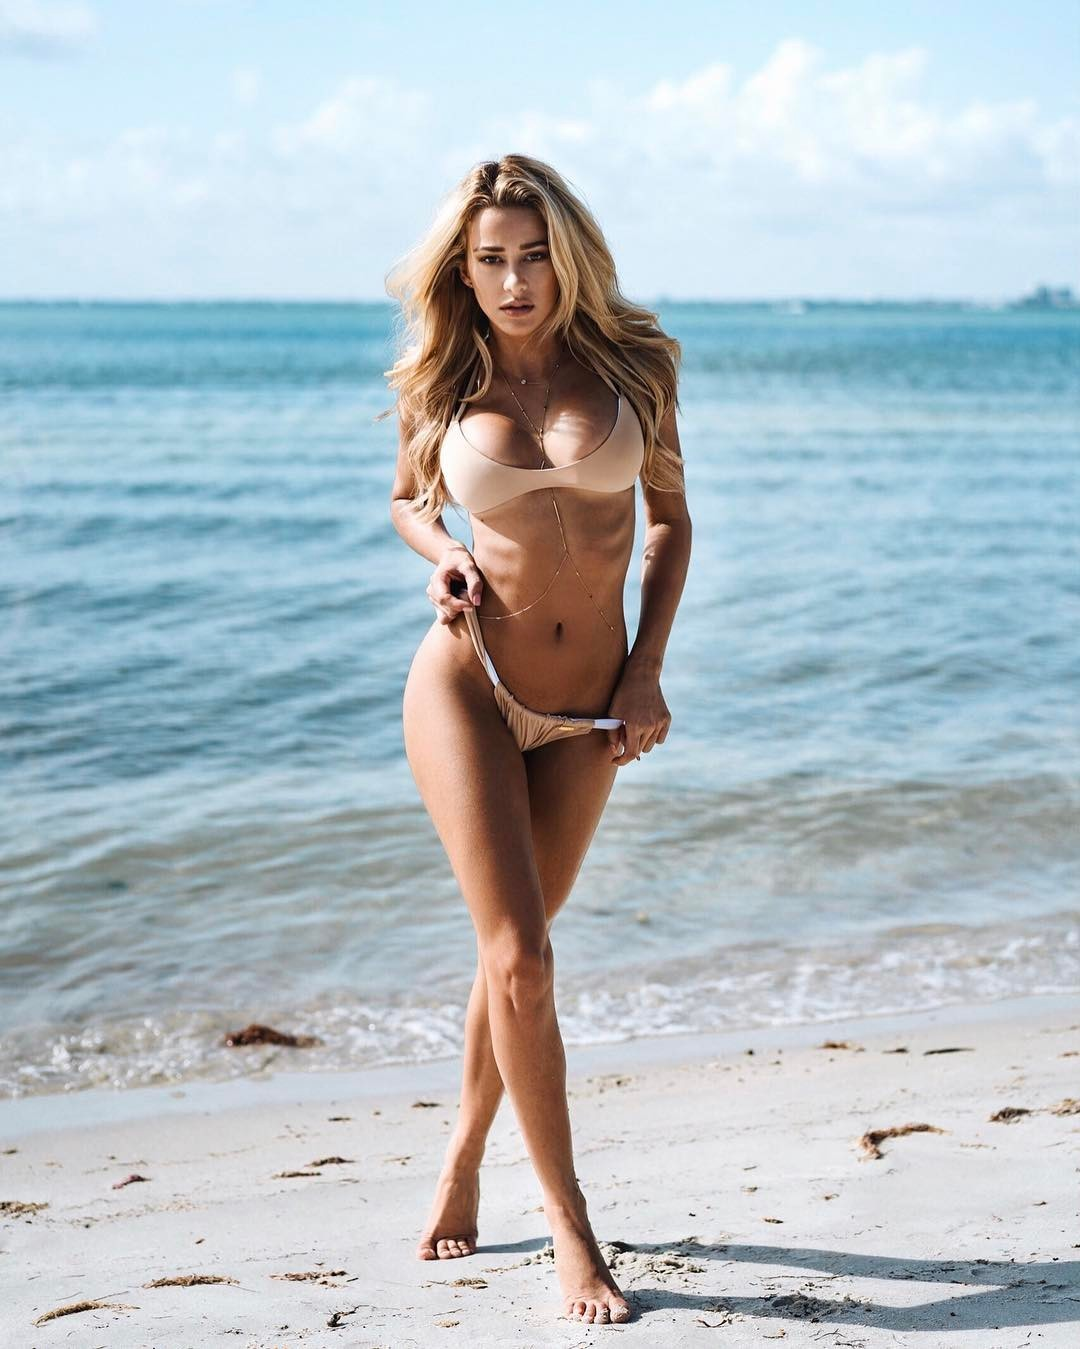 Feet Cindy Prado nude photos 2019